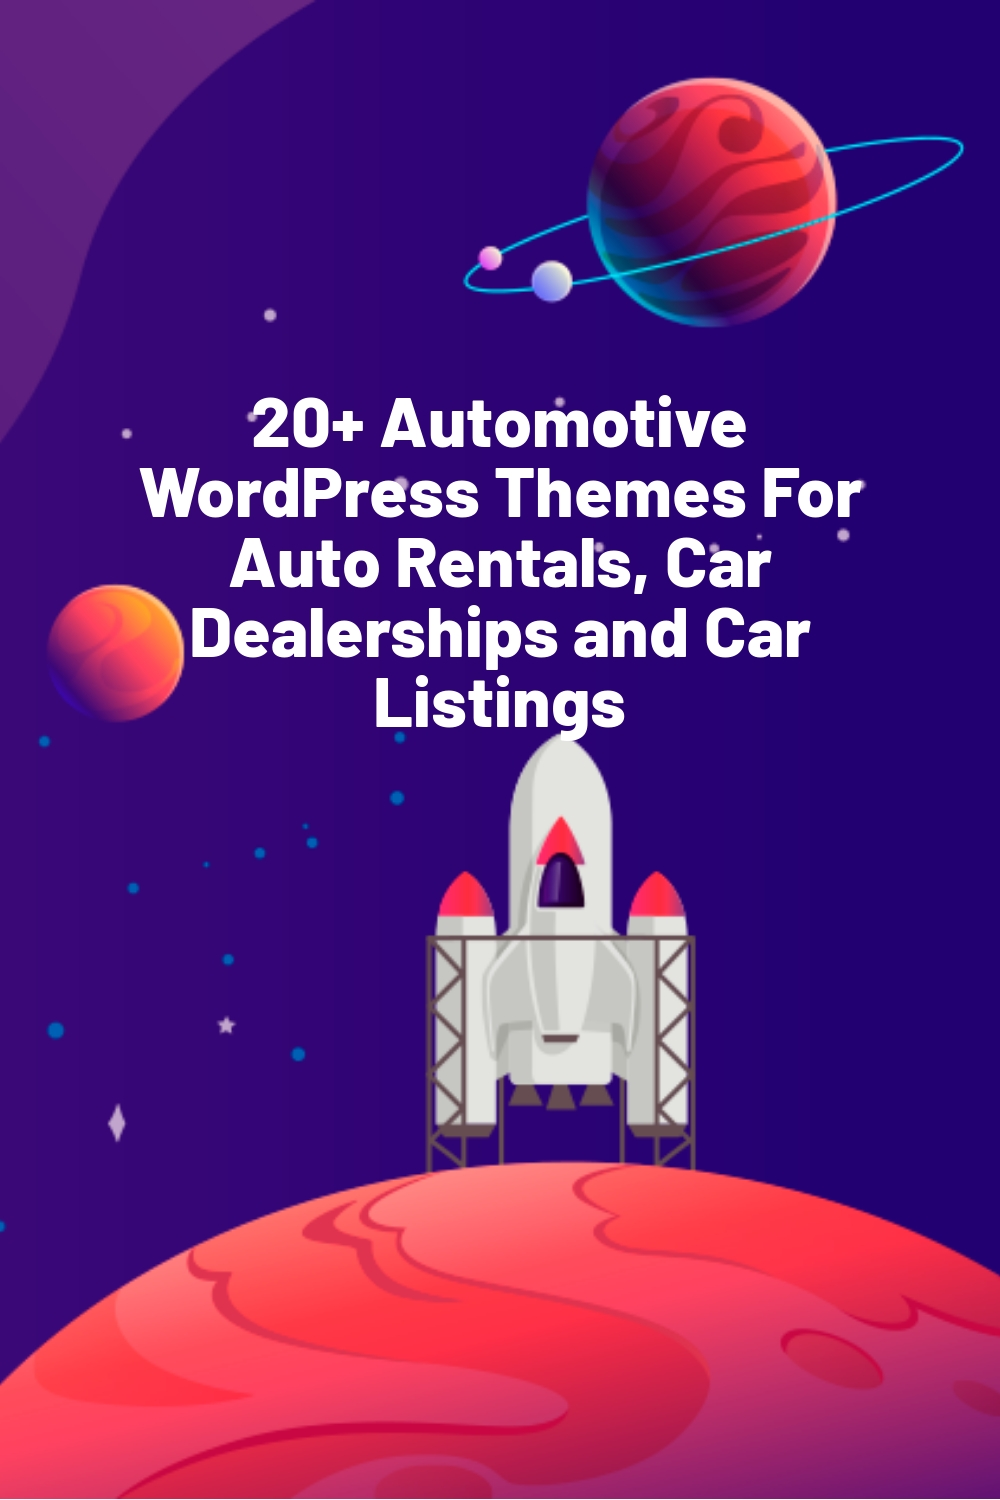 20+ Automotive WordPress Themes For Auto Rentals, Car Dealerships and Car Listings